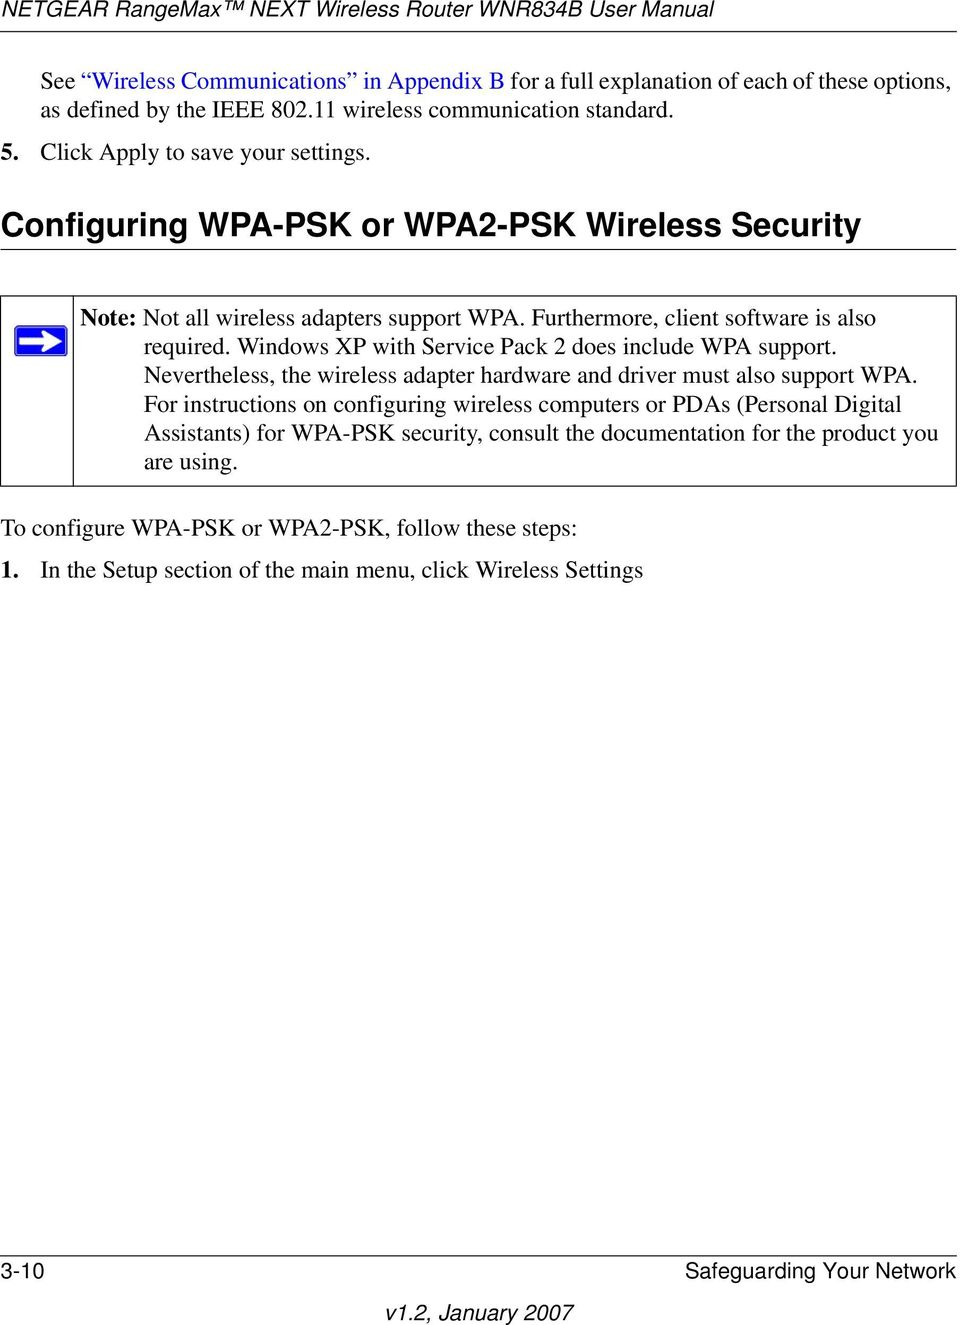 Windows XP with Service Pack 2 does include WPA support. Nevertheless, the wireless adapter hardware and driver must also support WPA.